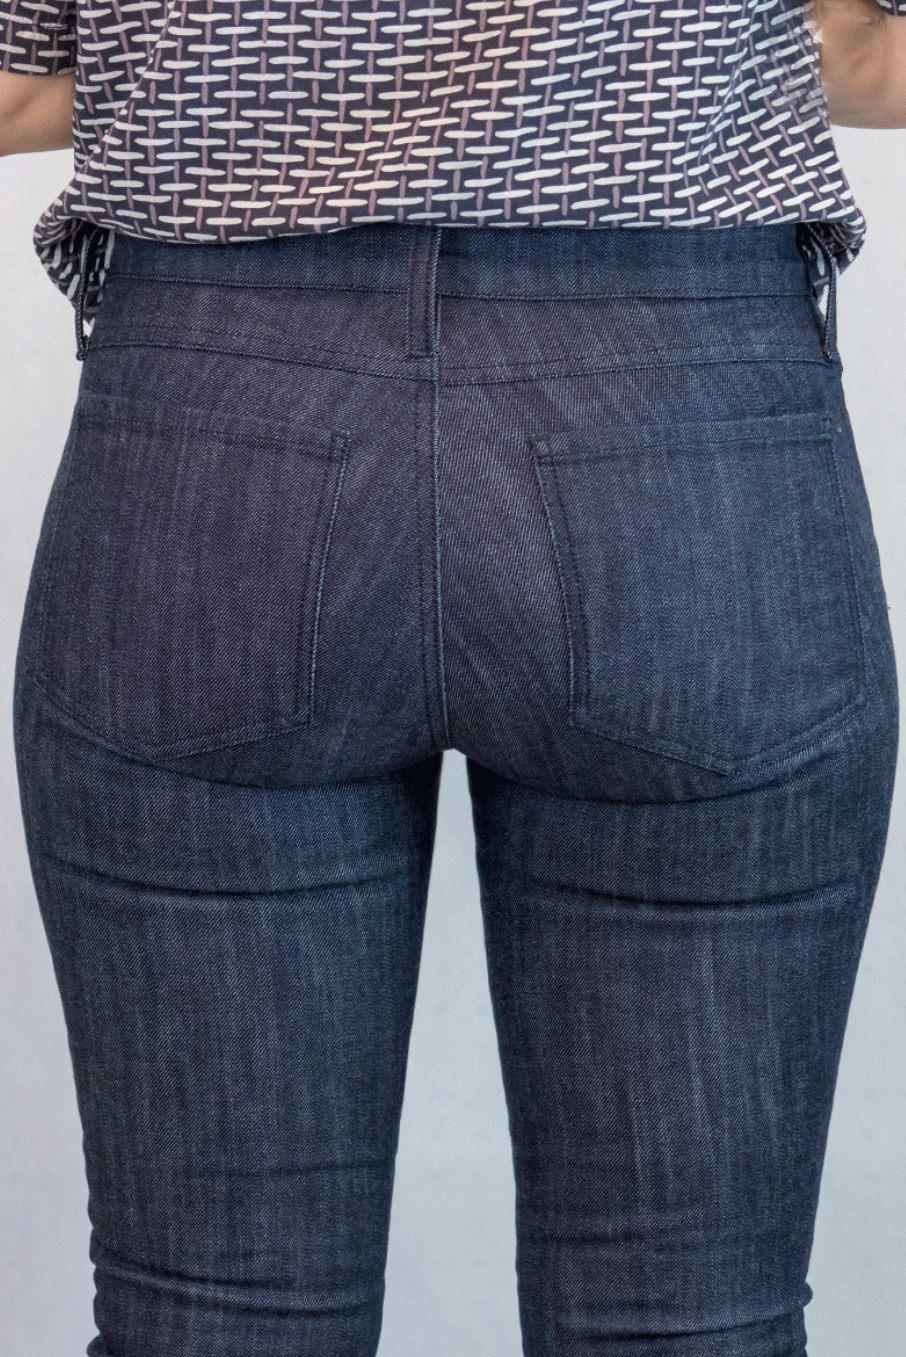 The Claryville Jeans from Workroom Social